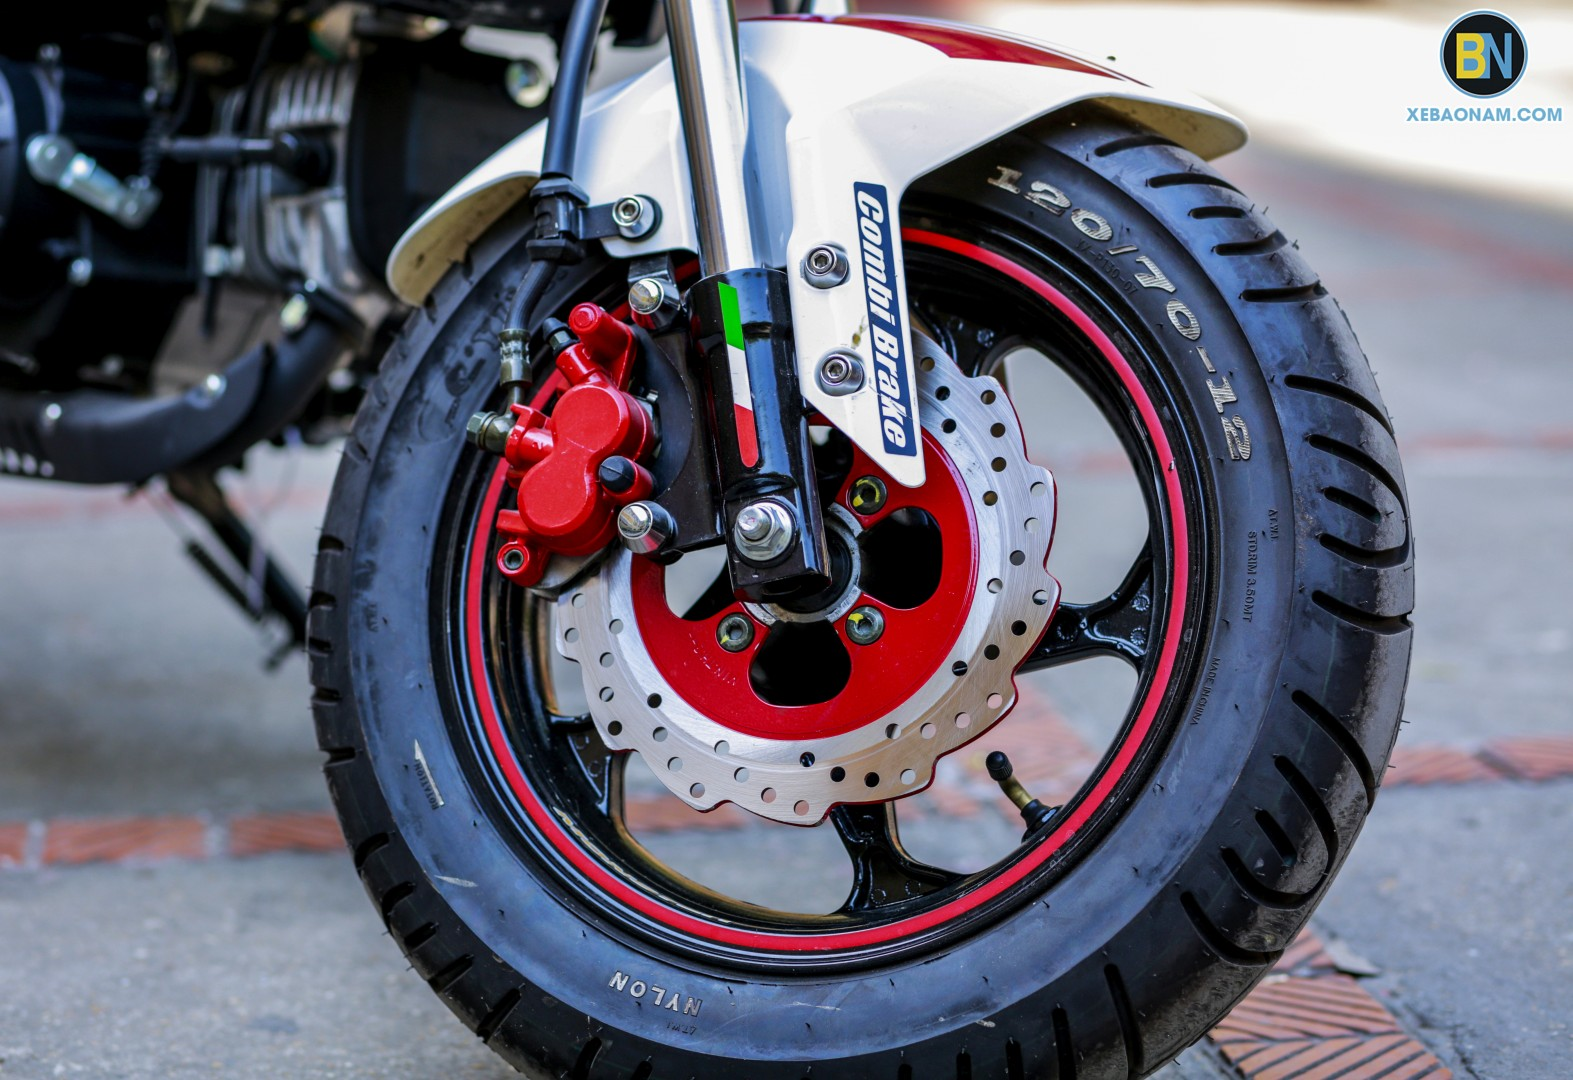 xe-may-ducati-mini-monster-110-xebaonam(25)